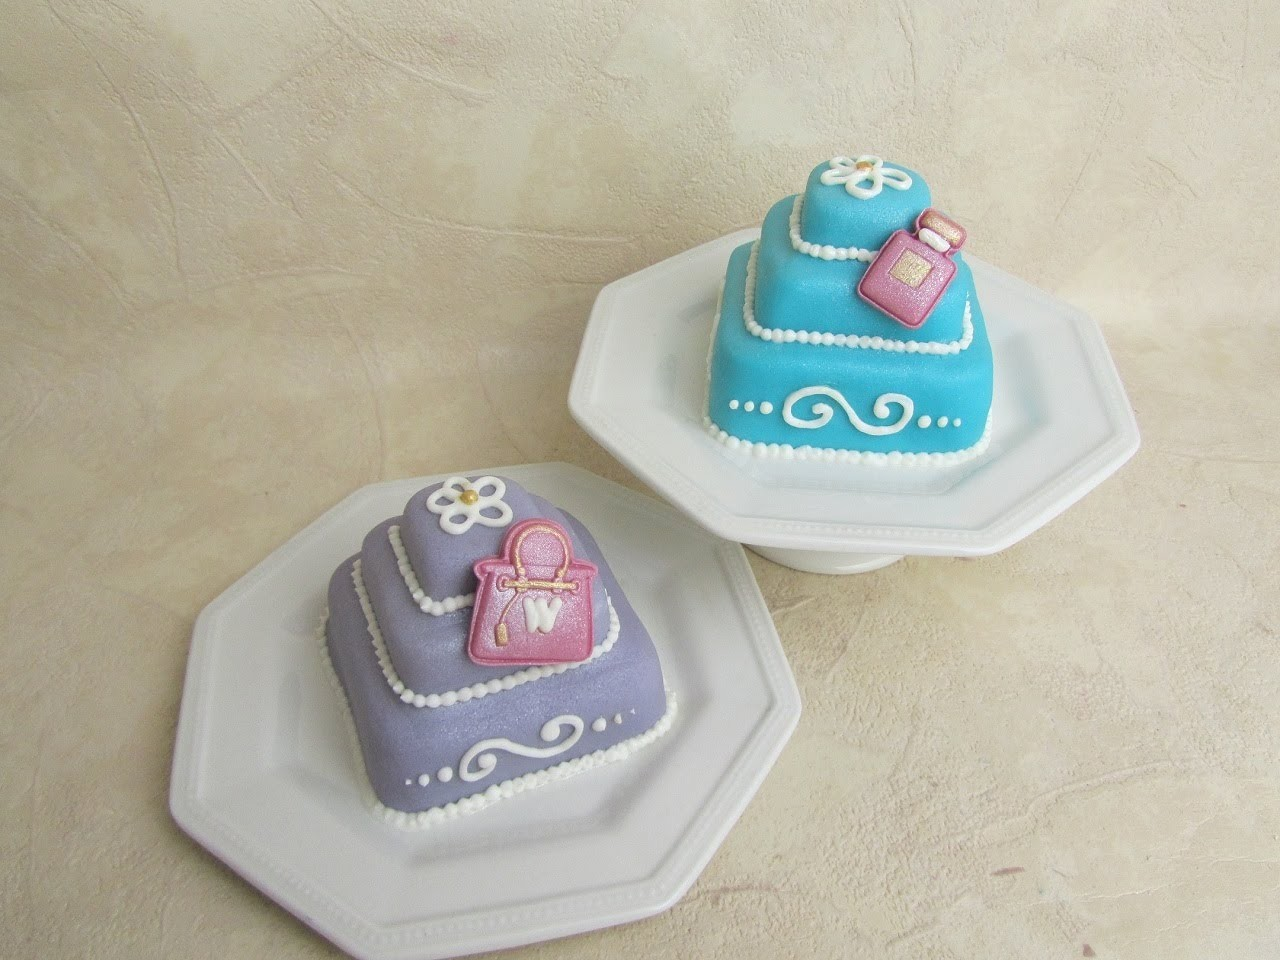 Glamour Mini Cakes (Handbag and Perfume) - Silikomart